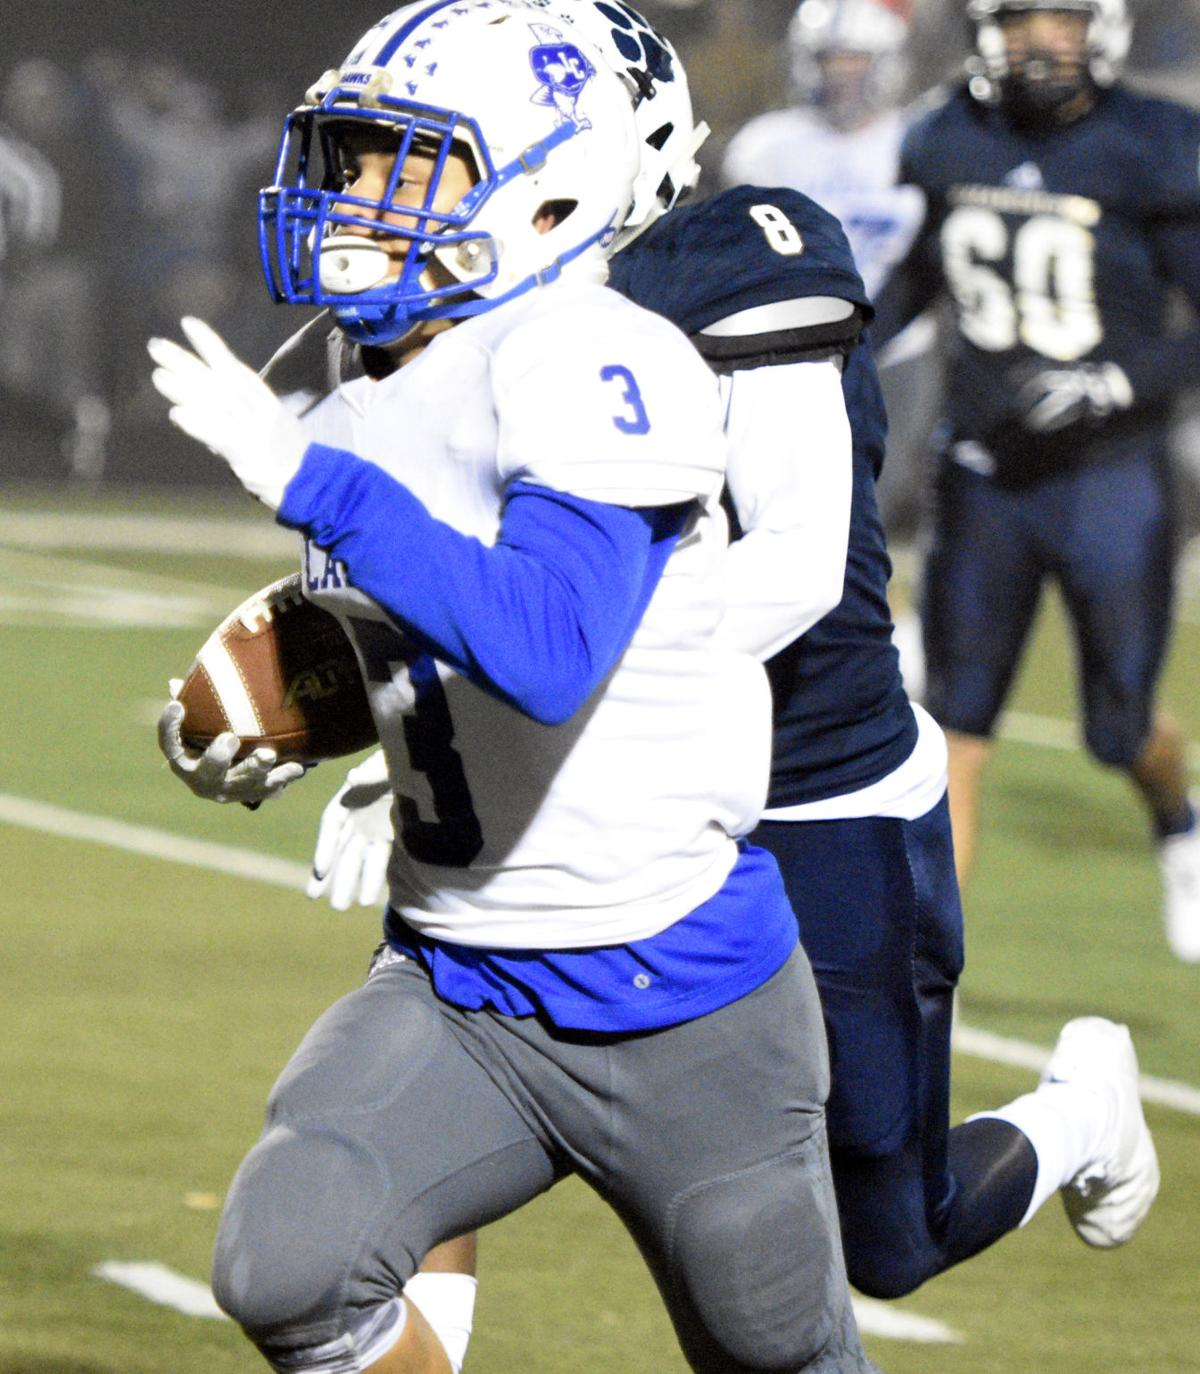 PREP FOOTBALL: LaRue's ground game is key to reaching first state championship game